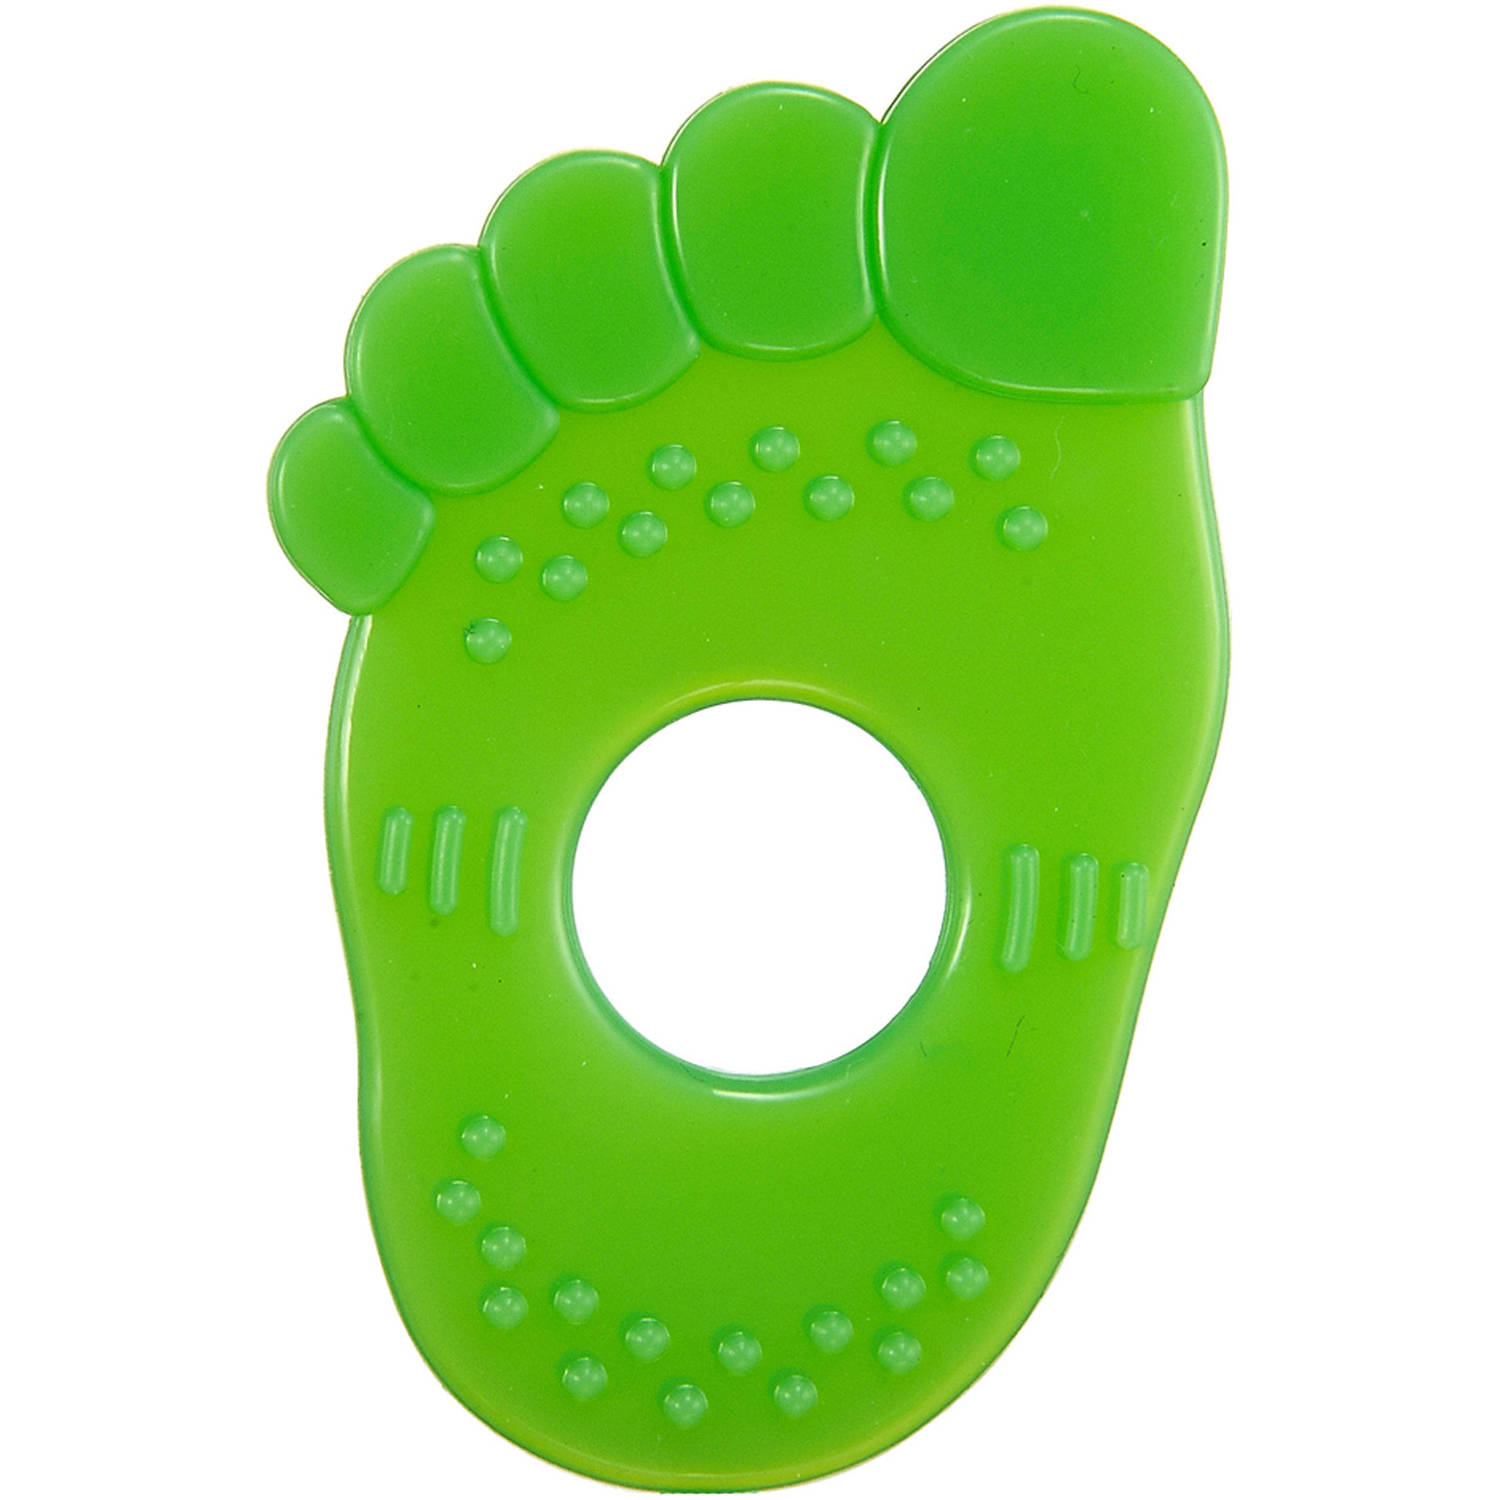 Simba Foot Silicone Teether, Green